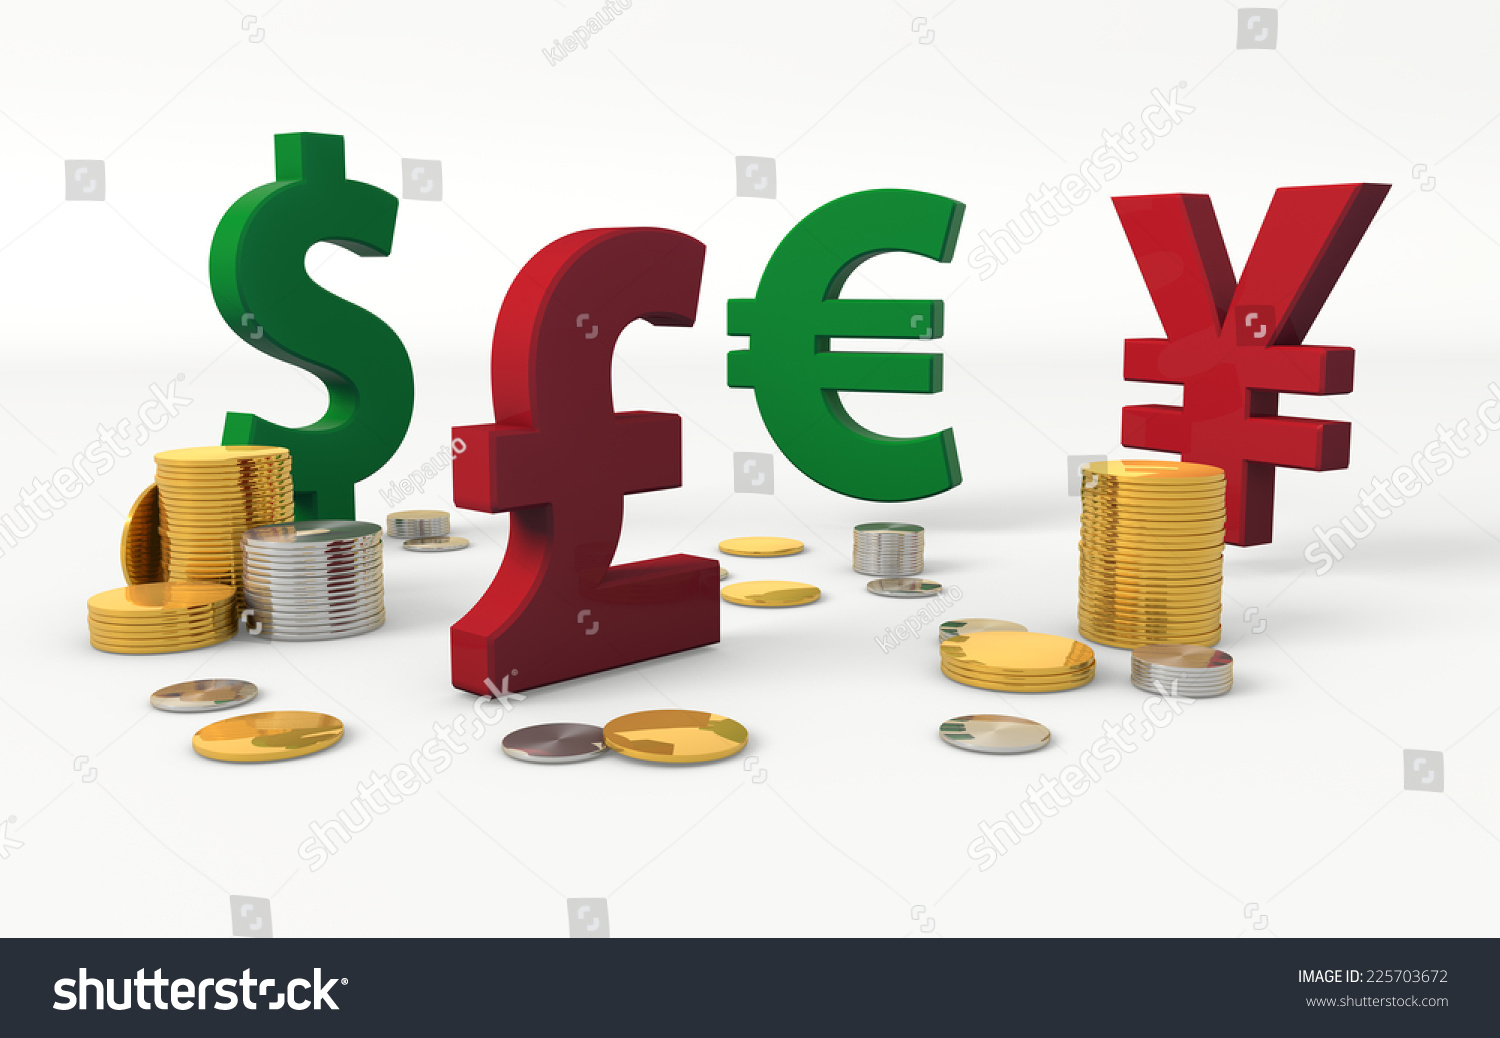 Royalty Free Stock Illustration Of Foreign Currencies Symbols Dollar